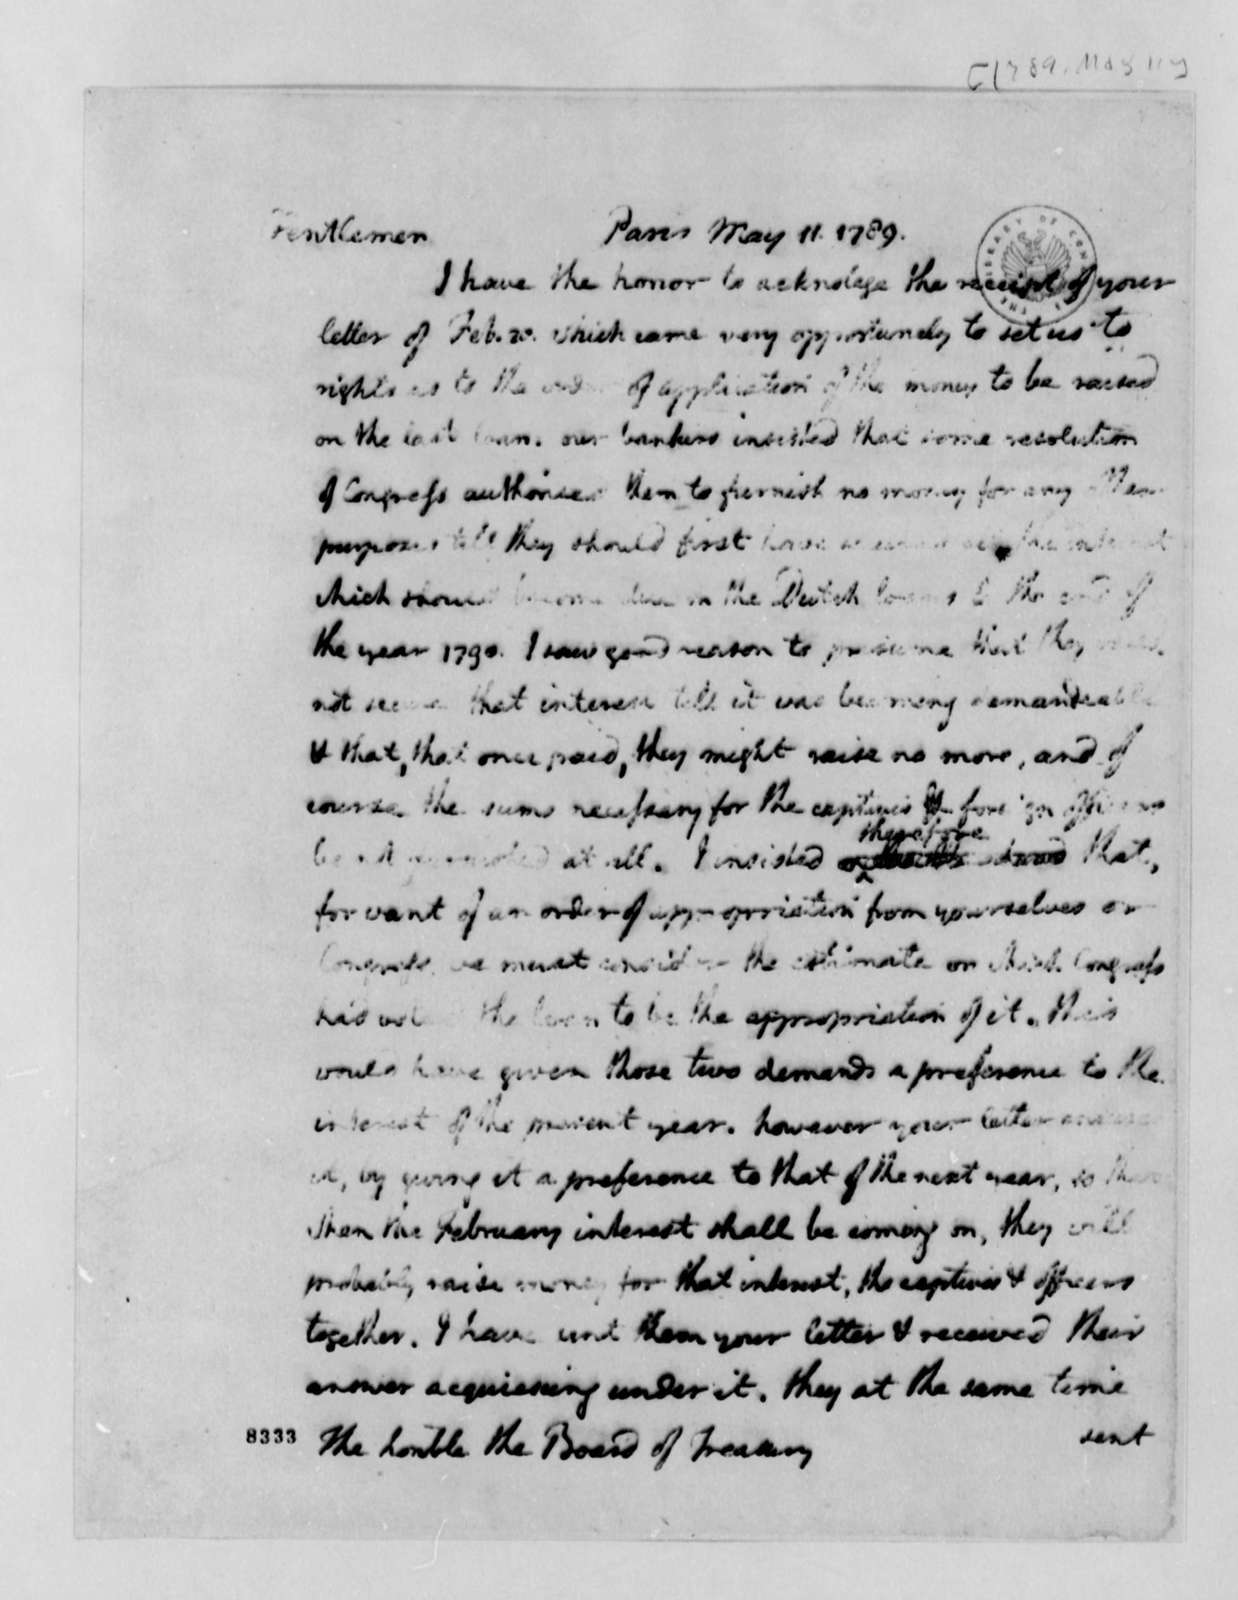 Thomas Jefferson to Commissioners of the Treasury, May 11, 1789